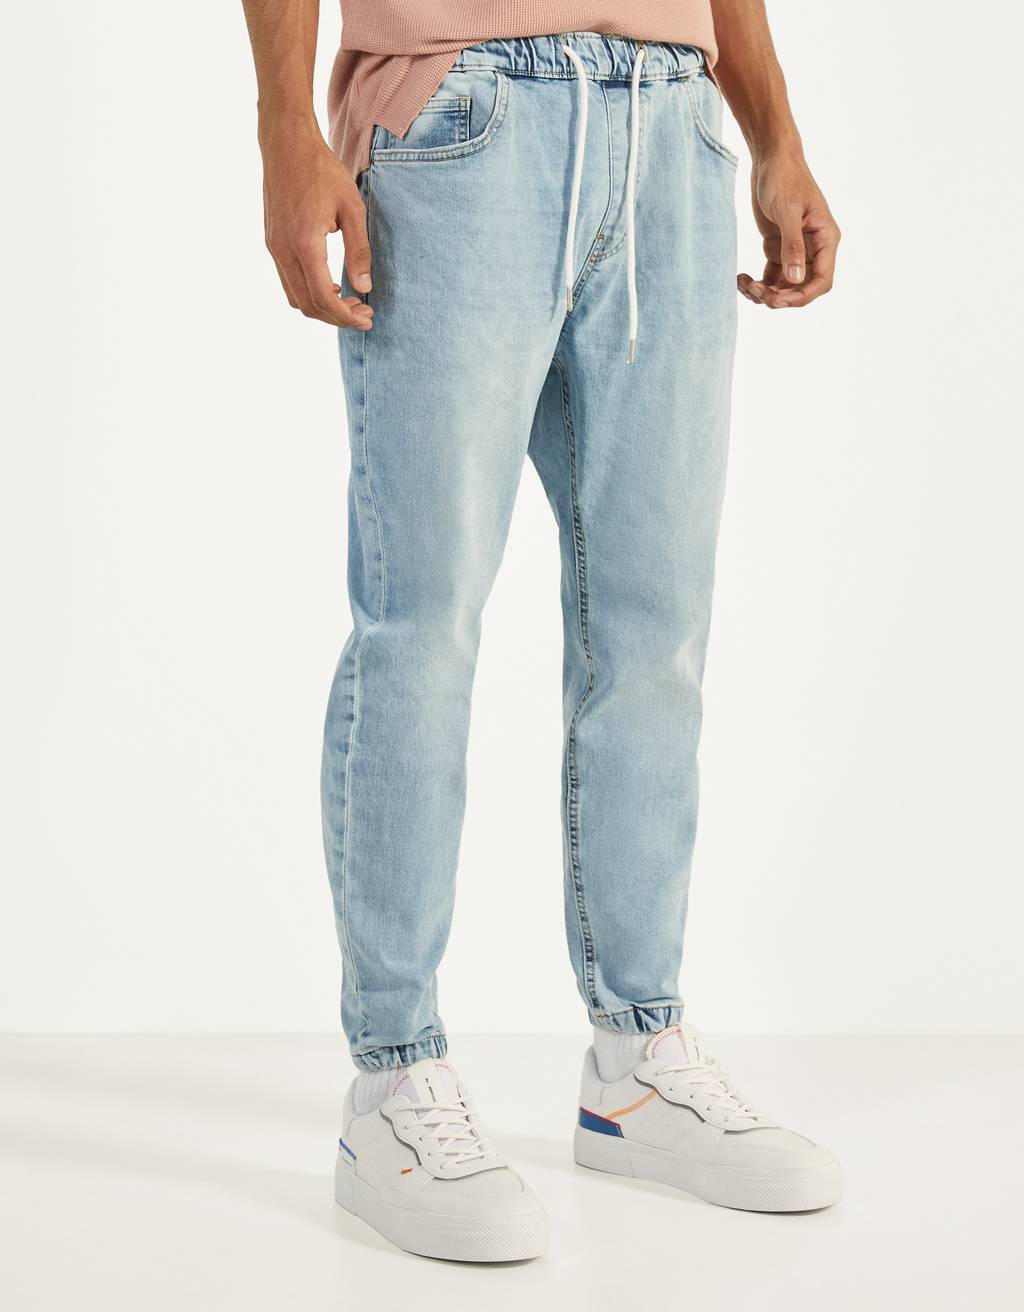 Denim joggingbroek